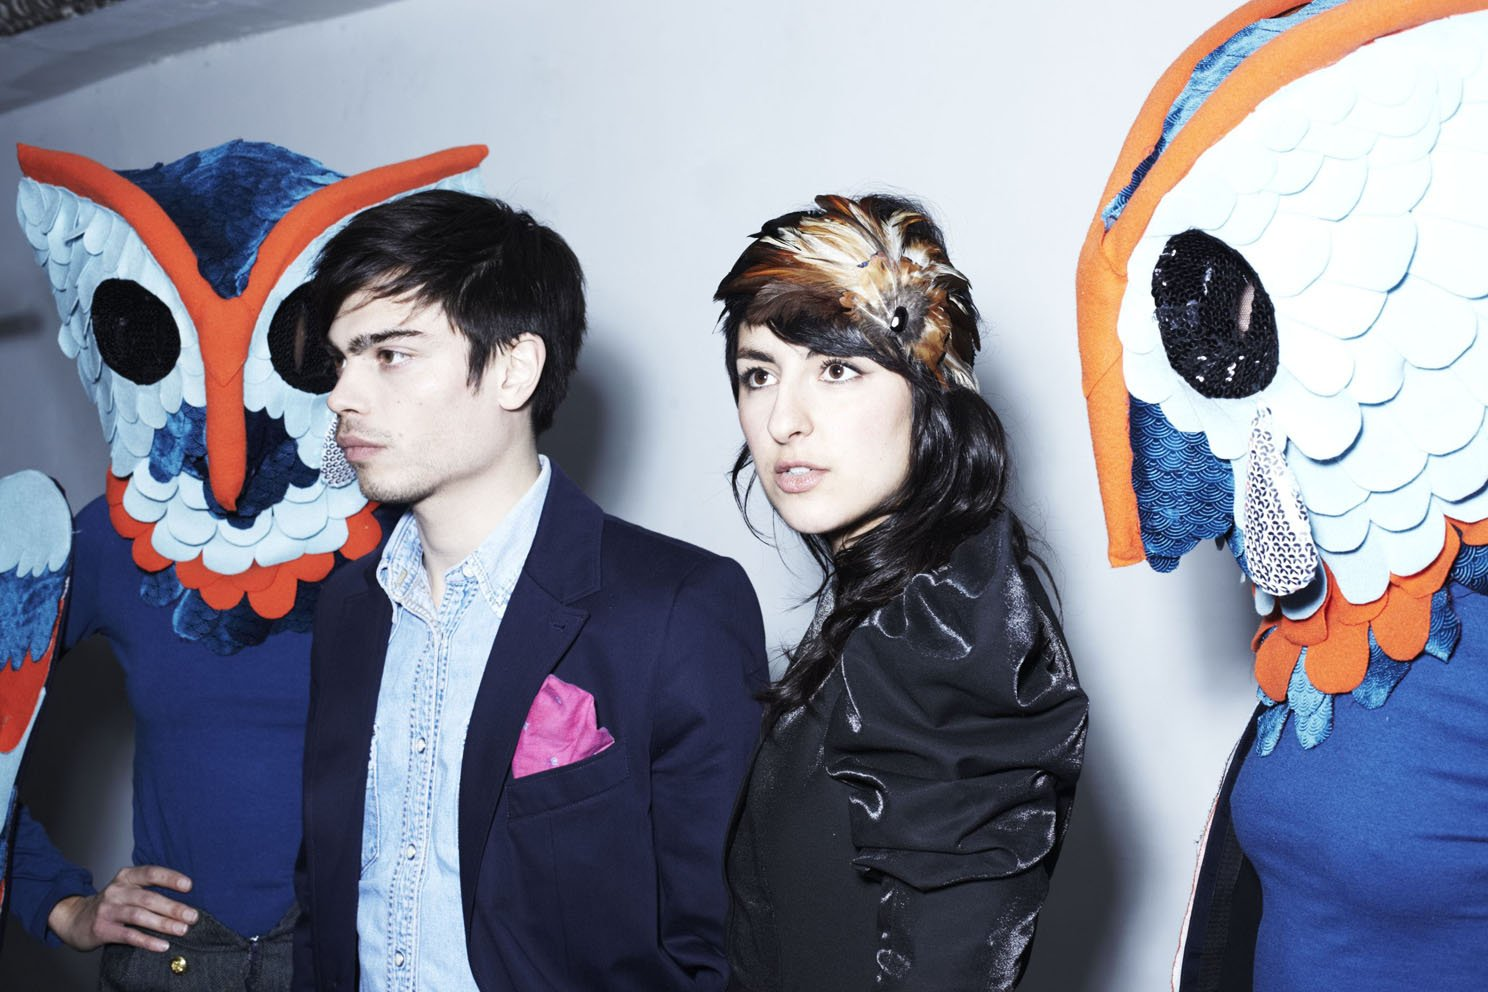 hhLilly Wood & The Prick - artist photos